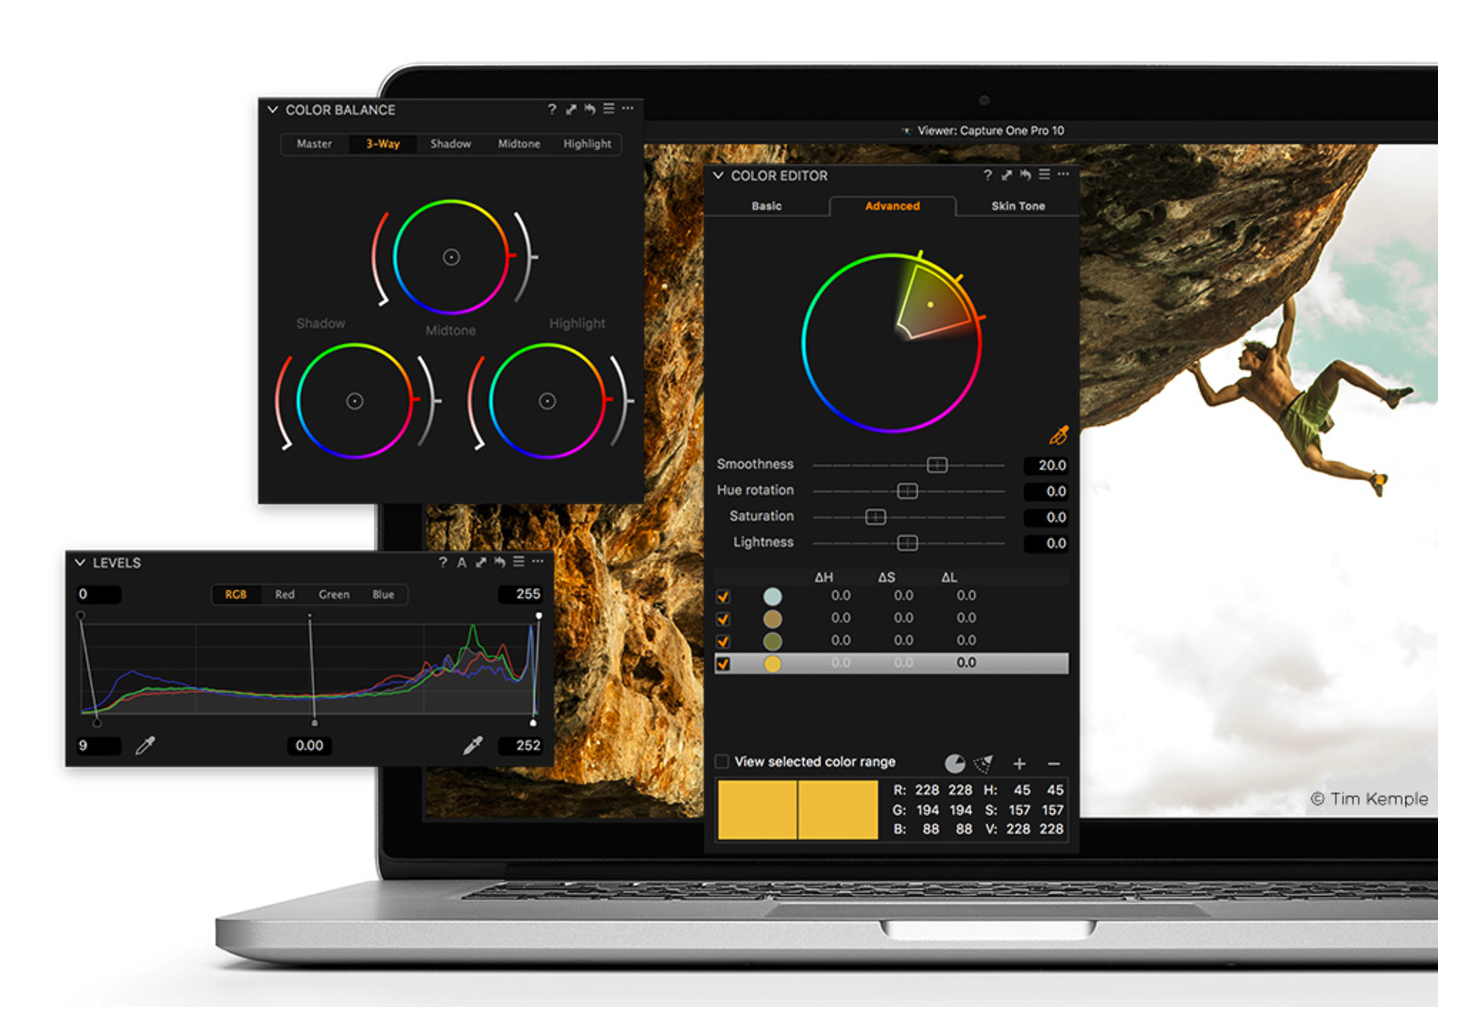 Capture One 10.1 Fixes More Bugs, Provides More Lens Support